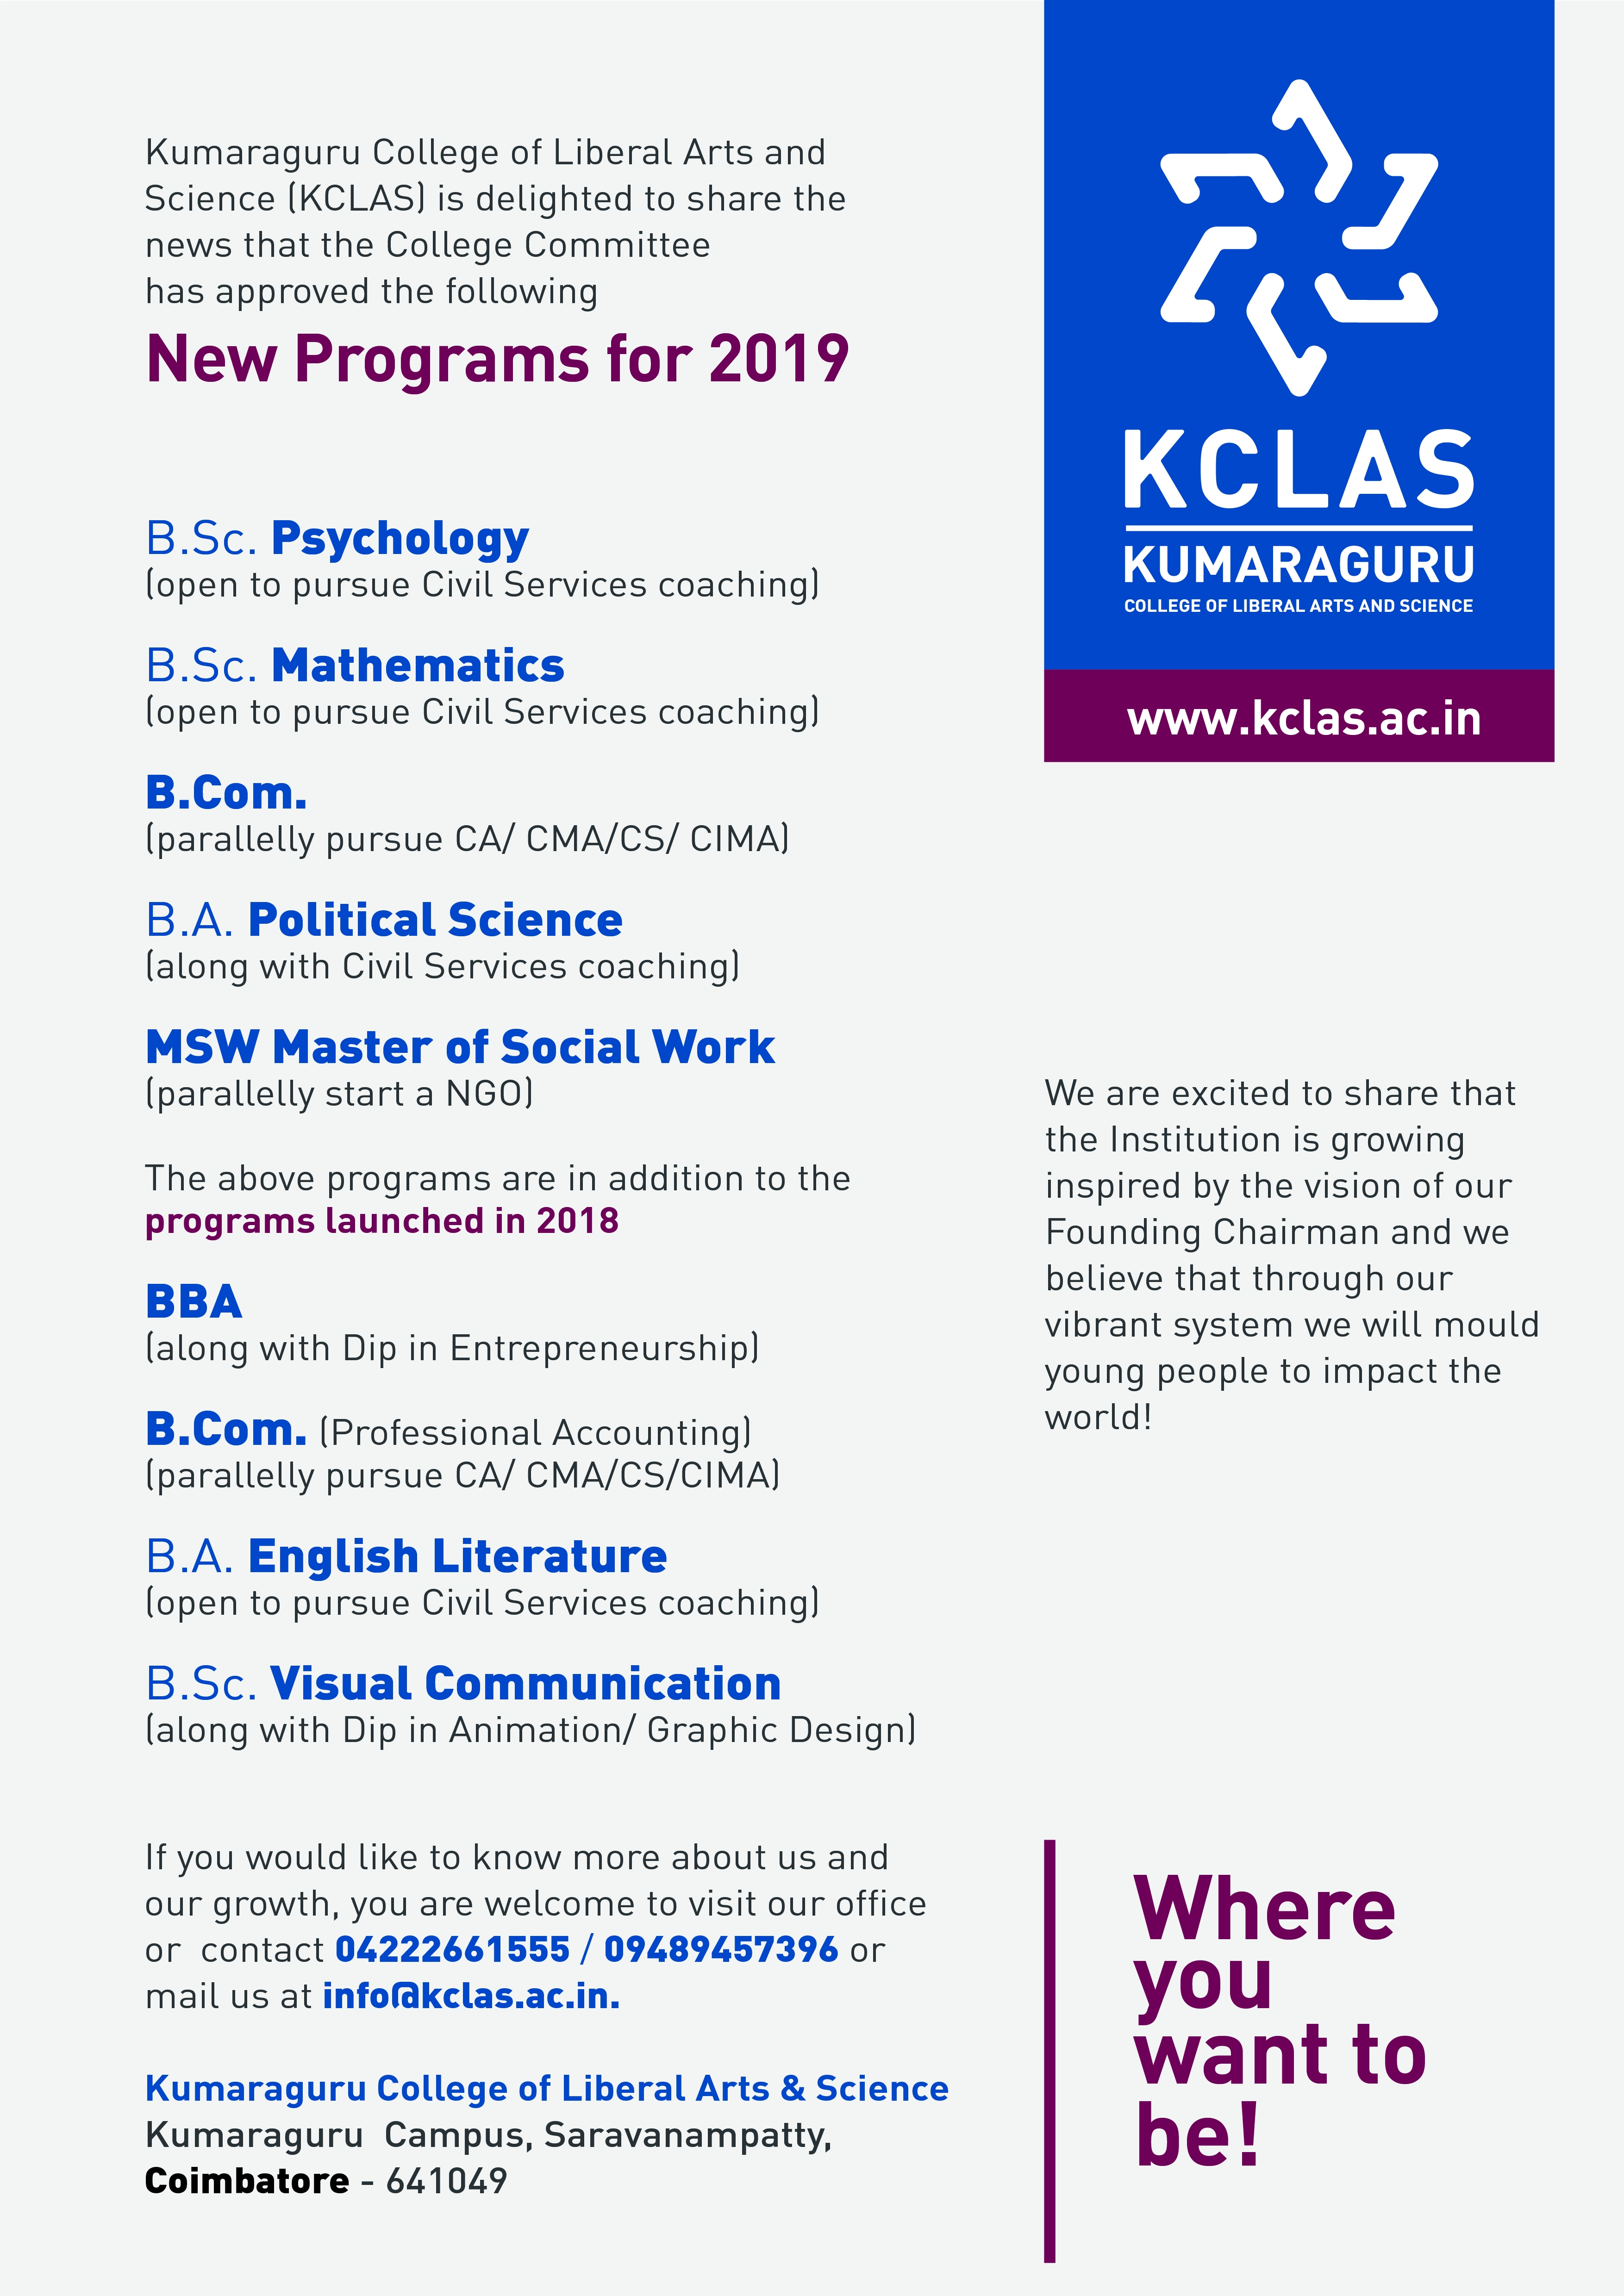 Kumaraguru College of Liberal Arts & Science - Application are welcome for 2019